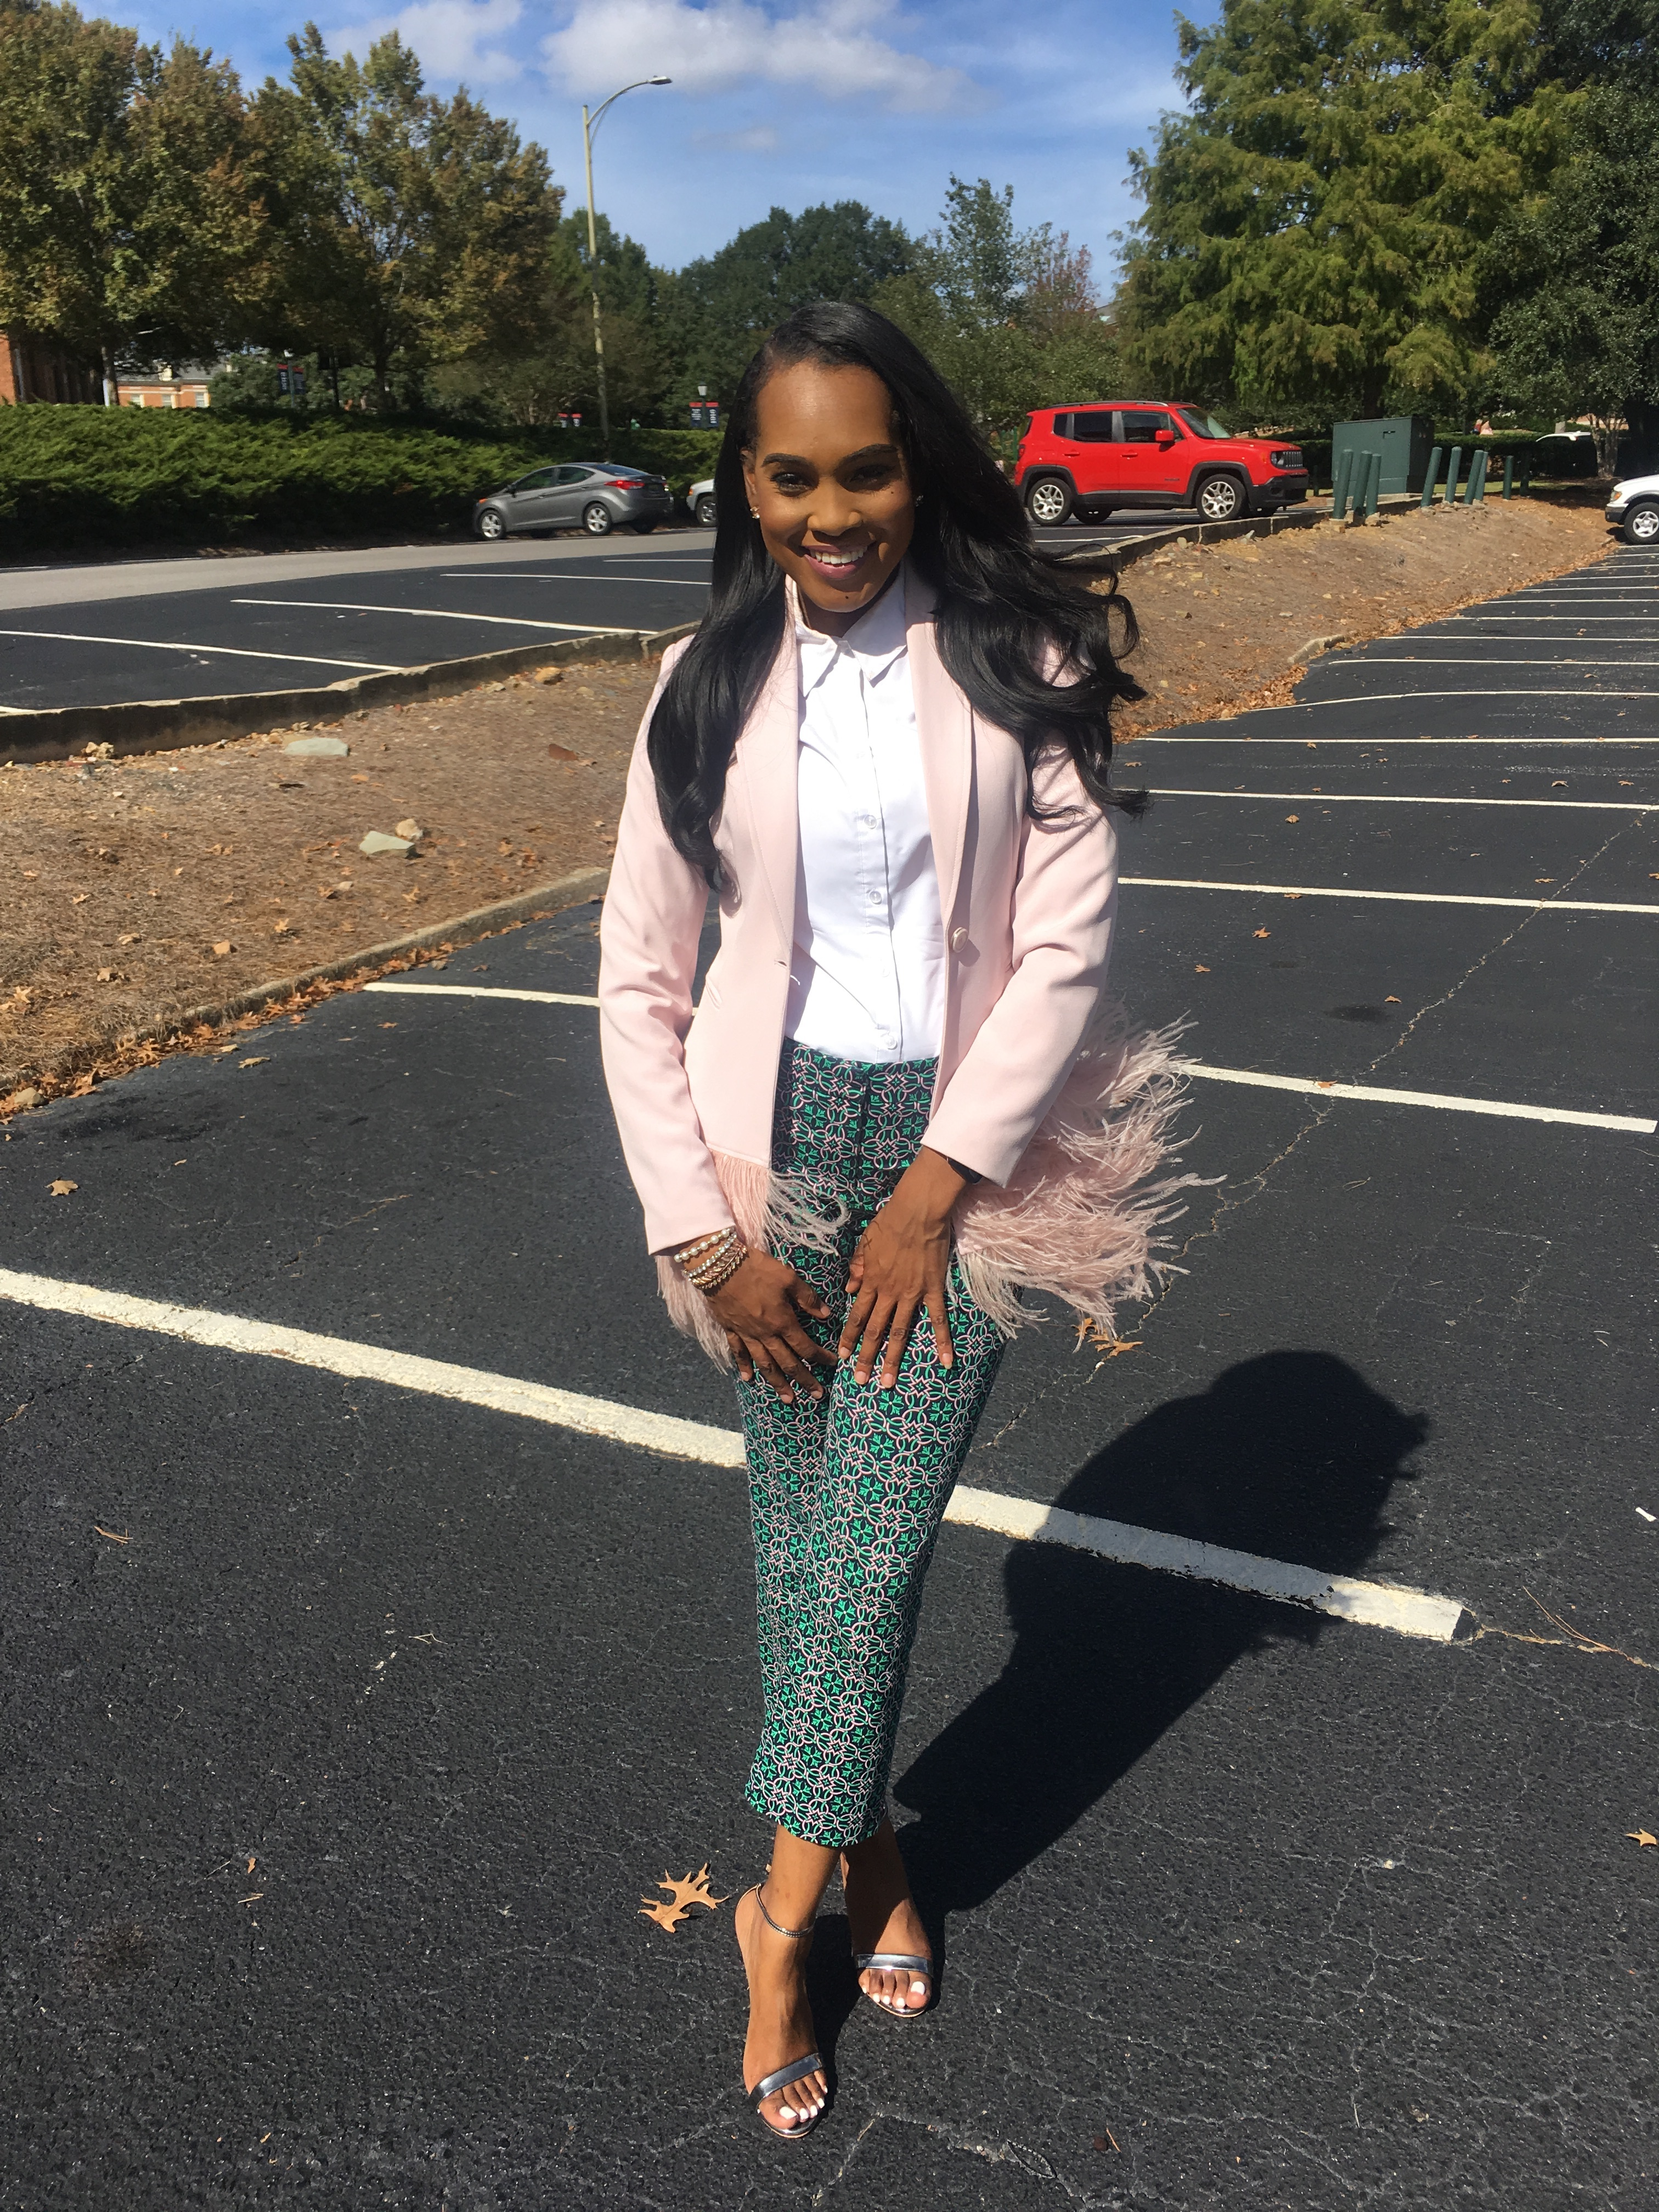 Style-Files-Thrifted-Printed-Jcrew-ankle-pants- white-thrifted-blouse-Pink-Gianni-Bini-Lizzy-Notch-Lapel-Collar-Feather-Trim-Solid-Crepe-Blazer-feather-hem-blazer-Birmingham-Association-of-black-journalist-college-panel-event-oohlalablog-2